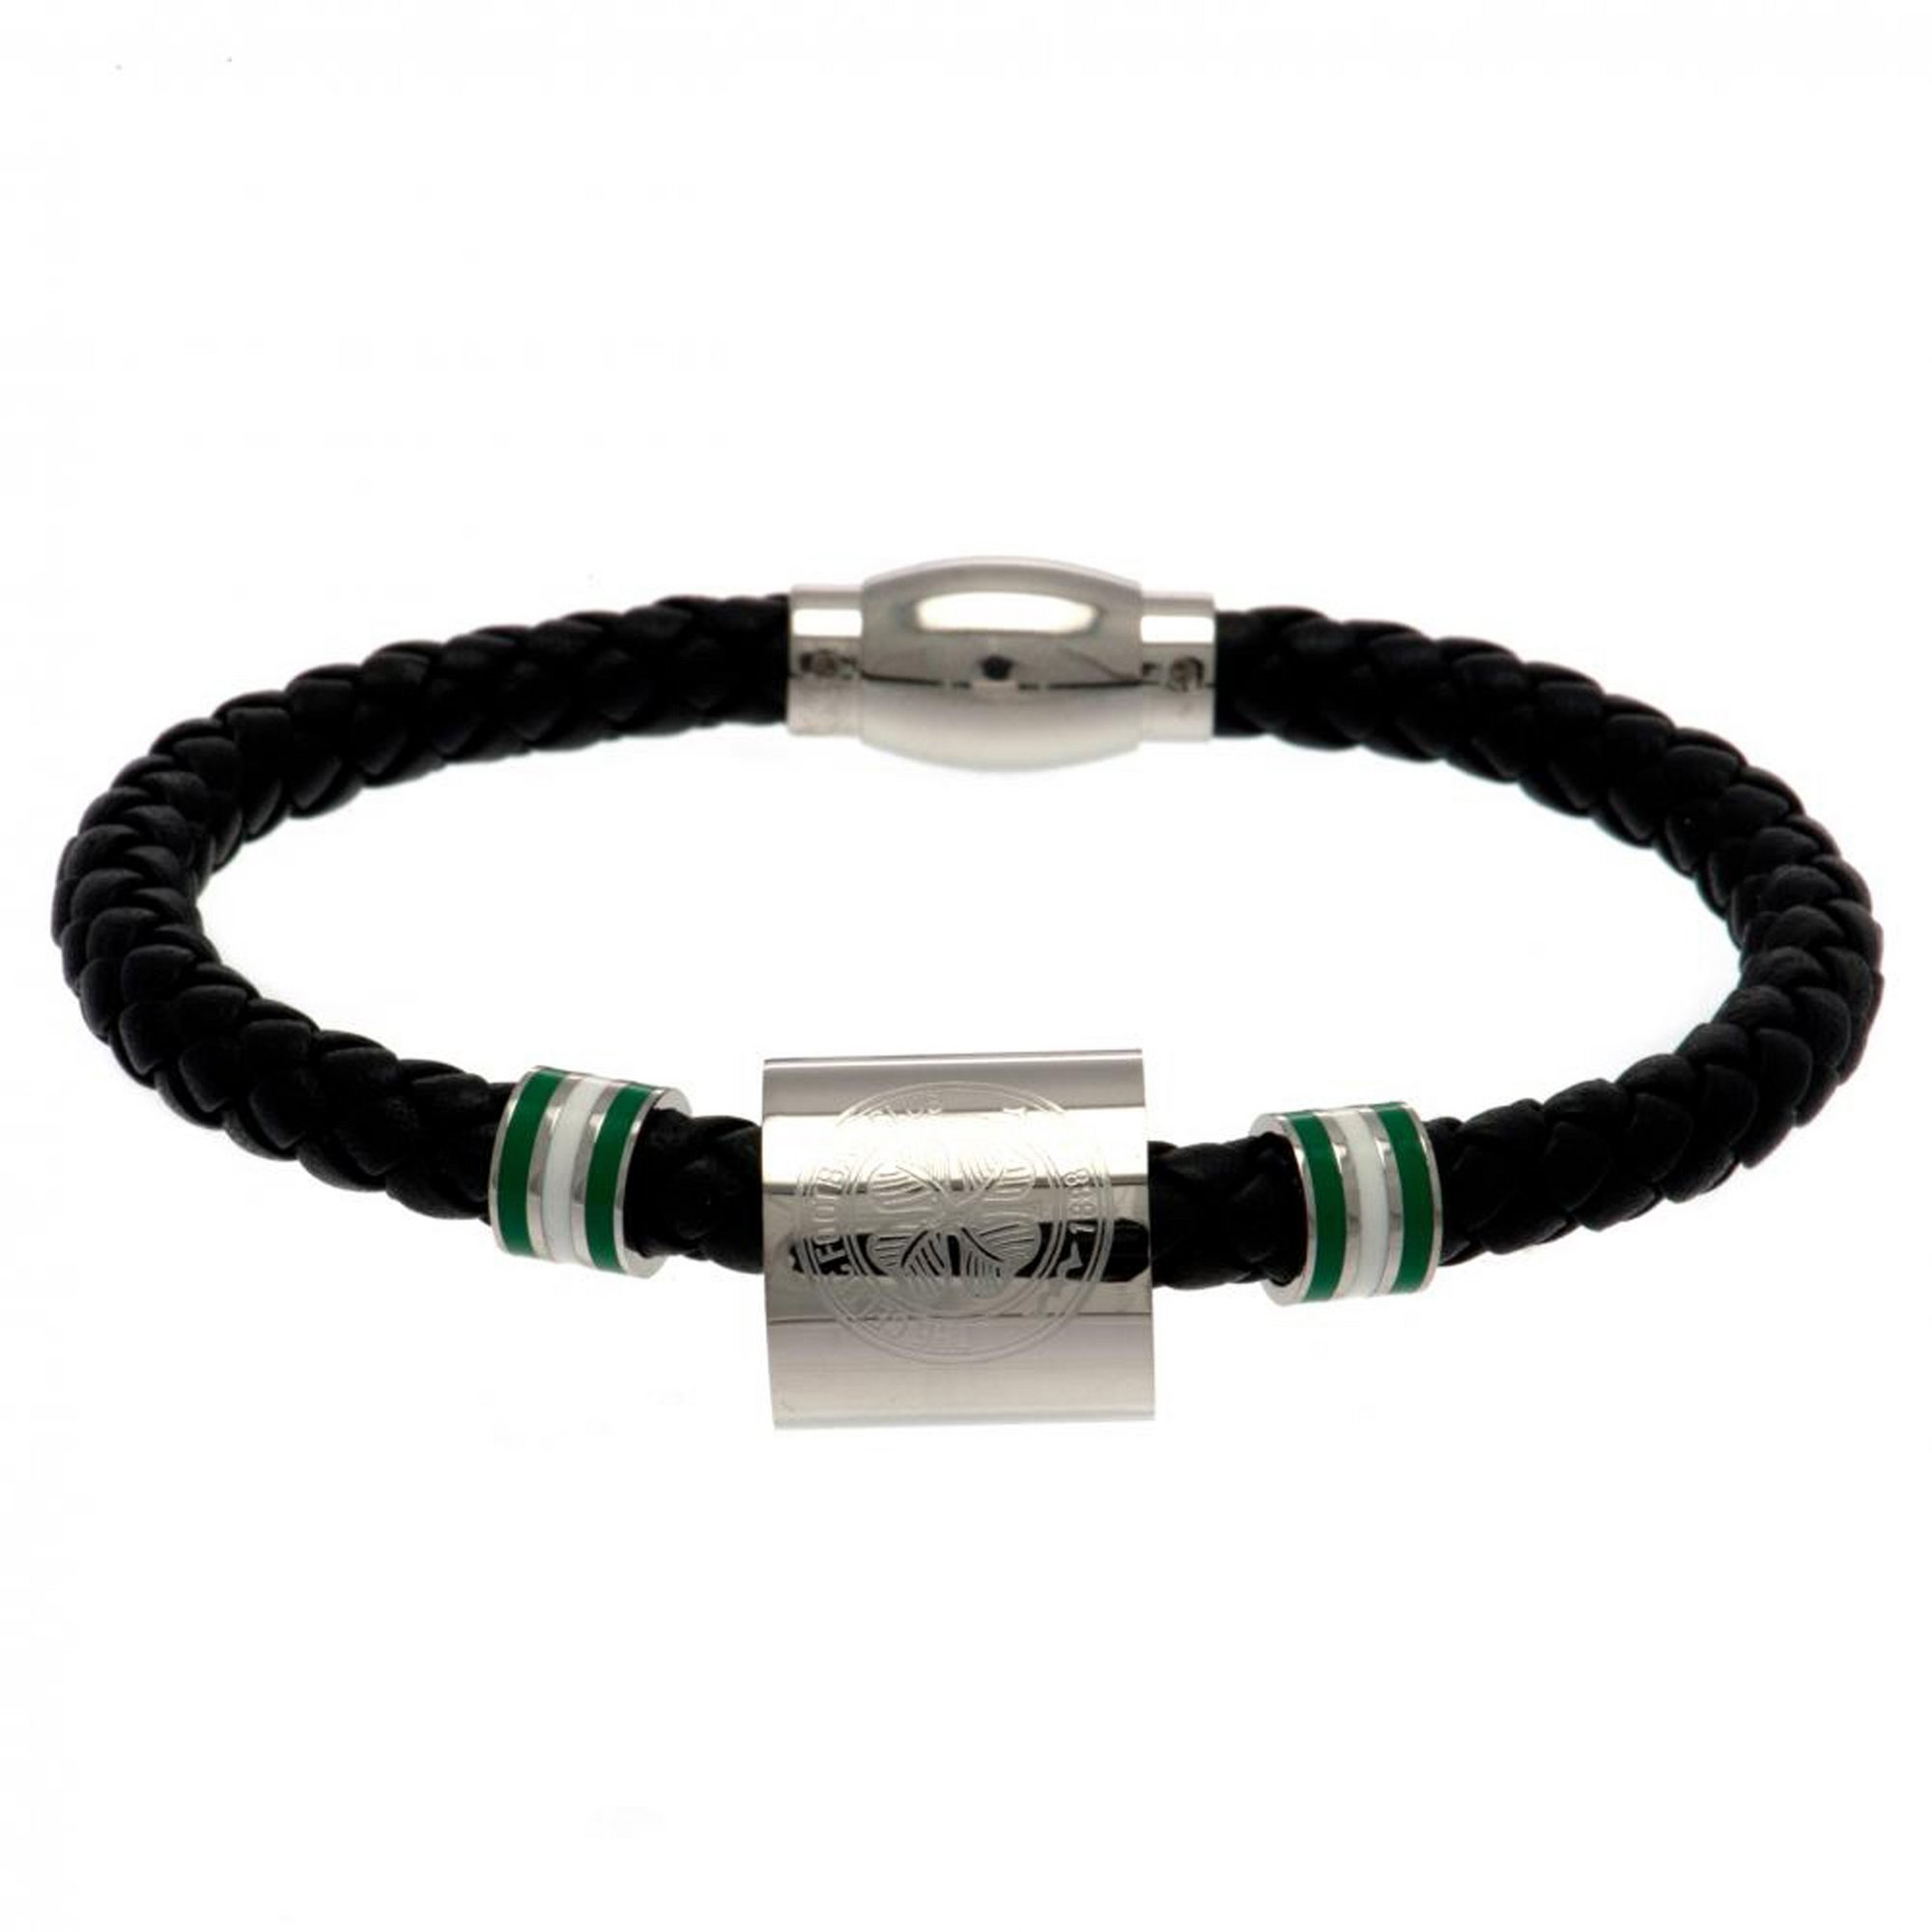 Image of Celtic FC Stainless Steel and Leather Crest Bracelet